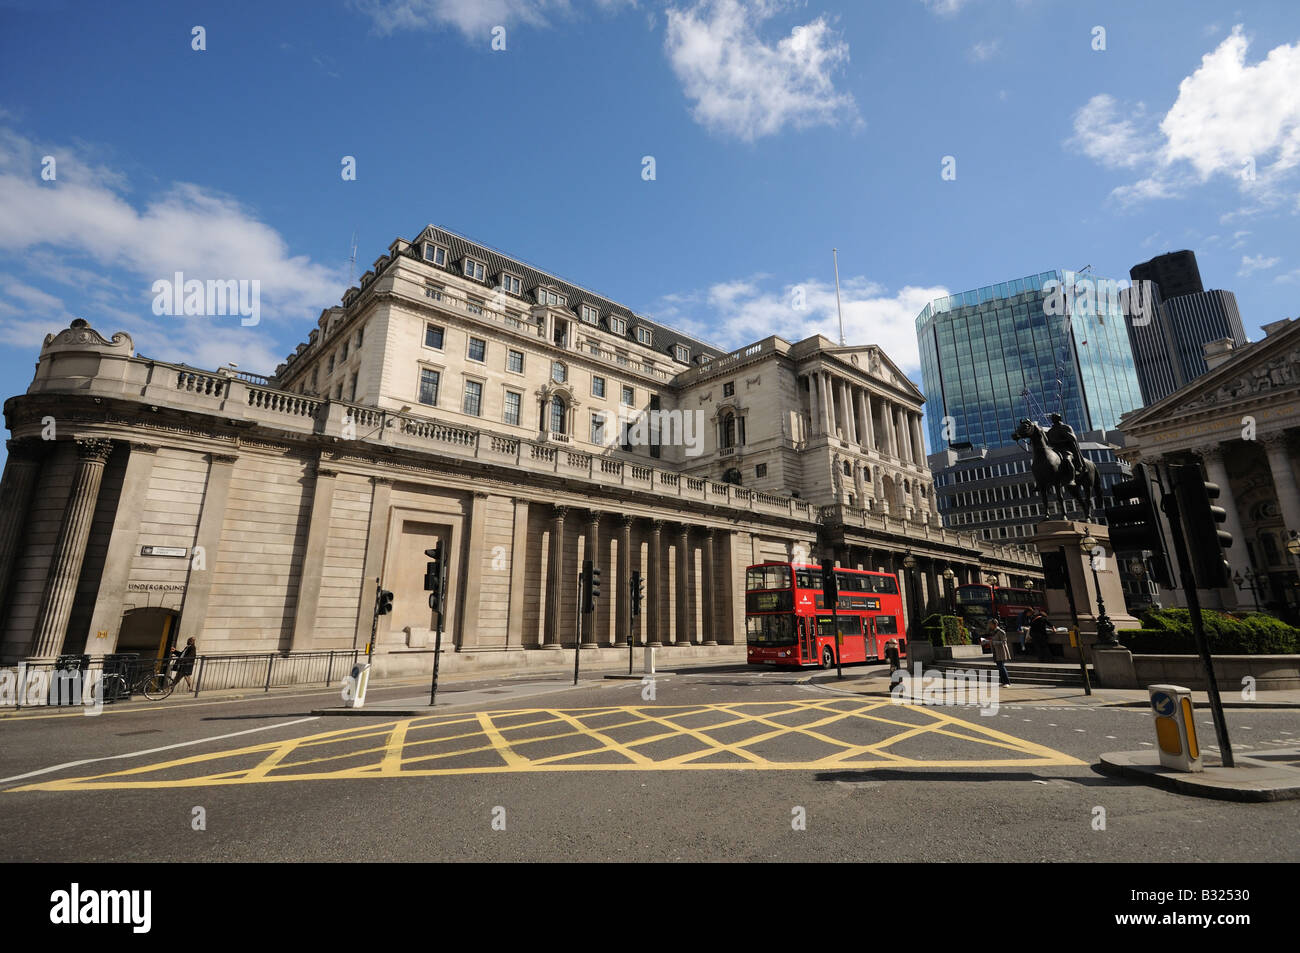 view of Bank of England threadneedle street from the mansion house road junction including box junction london england - Stock Image